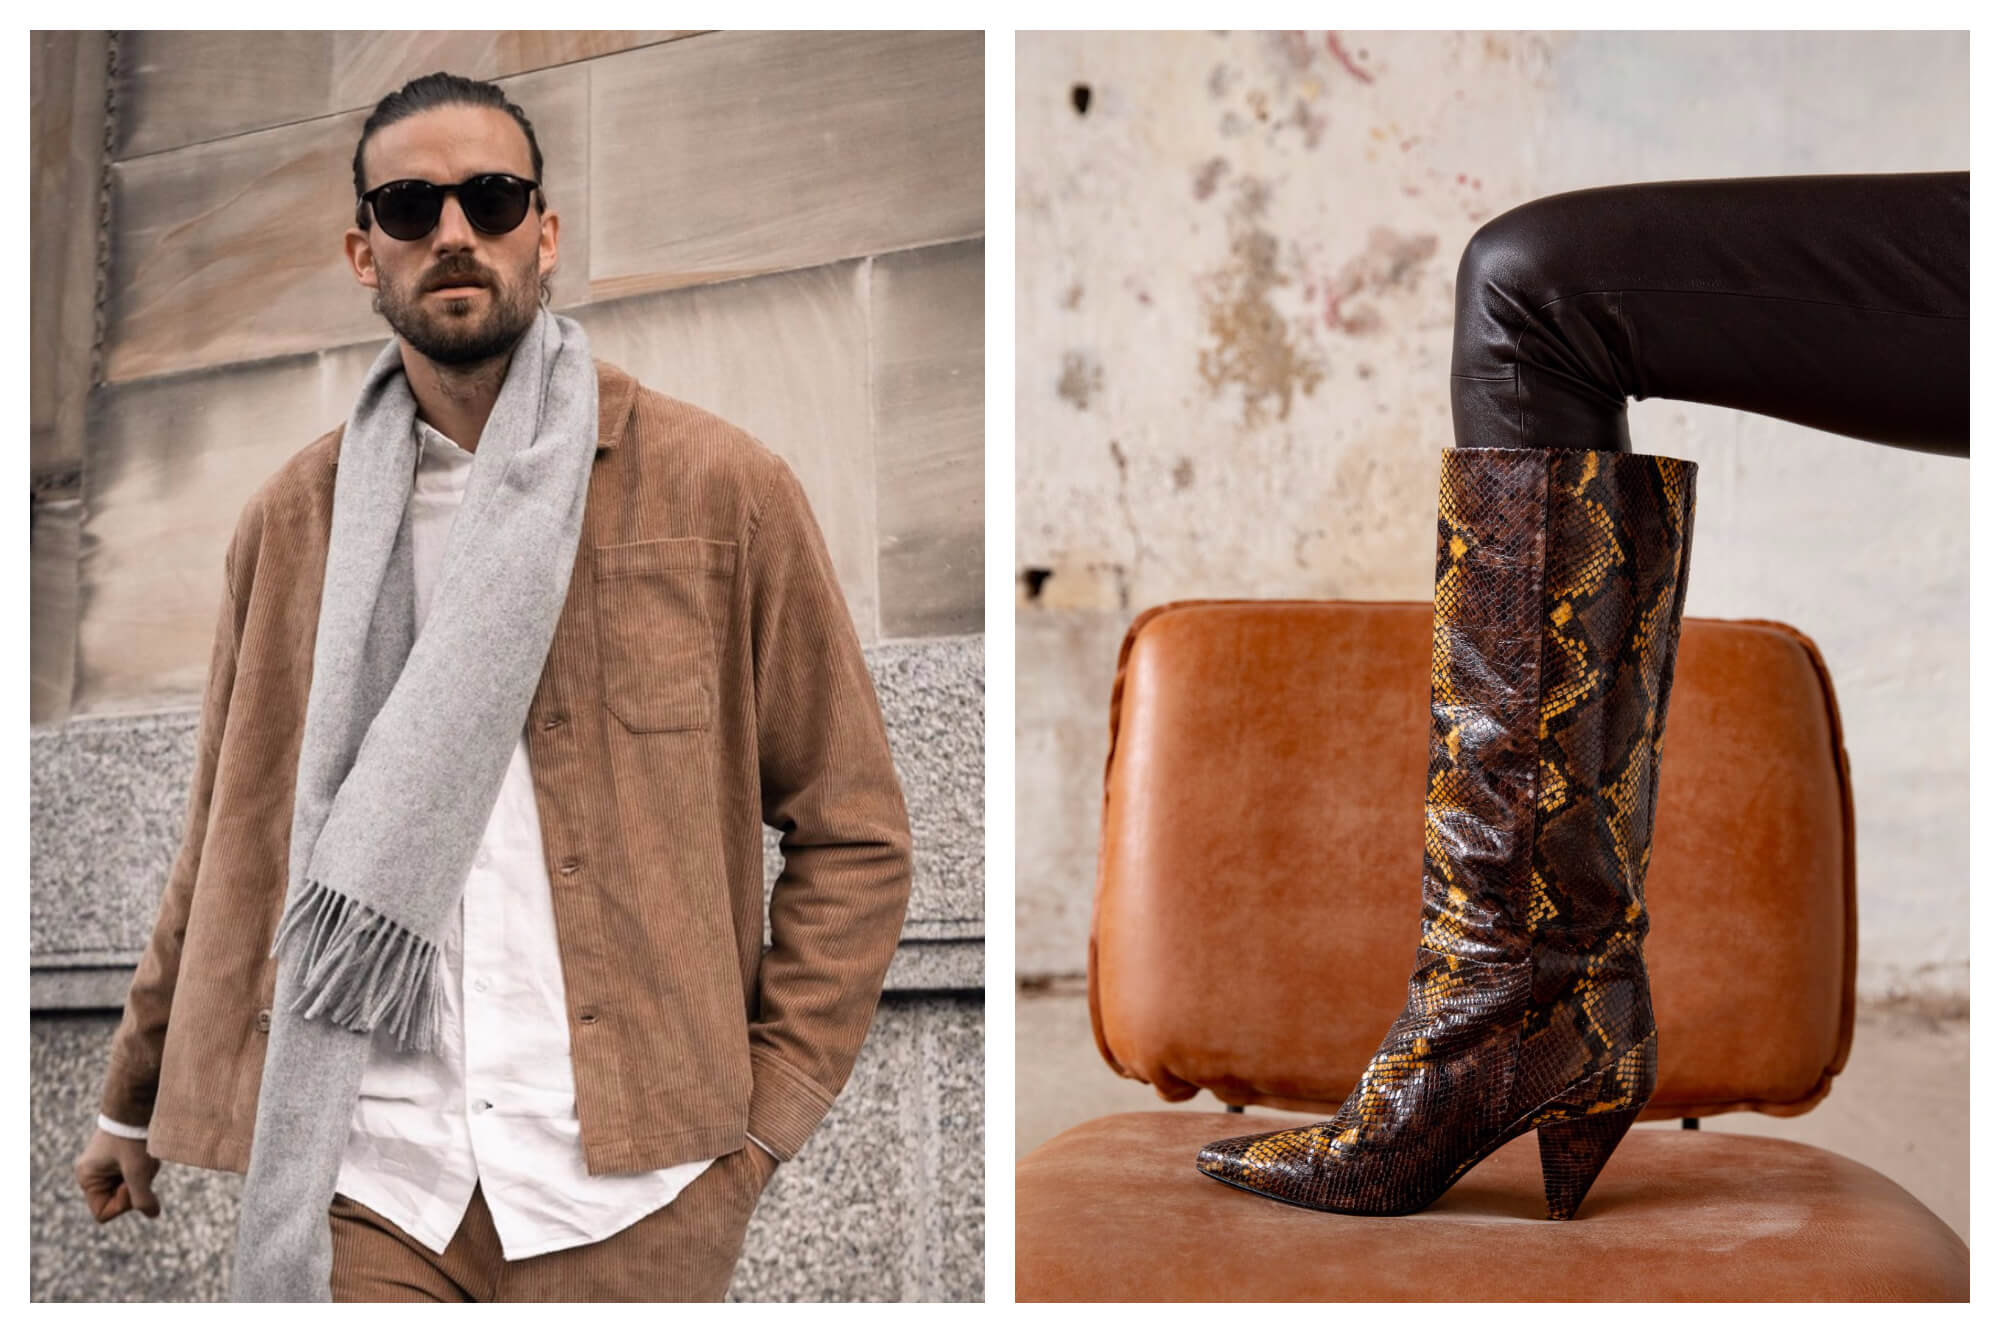 Left: a man in front of a stone wall wearing a camel coloured jacket and matching pants, a white shirt, a grey scarf and sunglasses. Right: a woman's leg positioned on a tan leather chair. She's wearing black pants with brown snakeskin heeled boots.